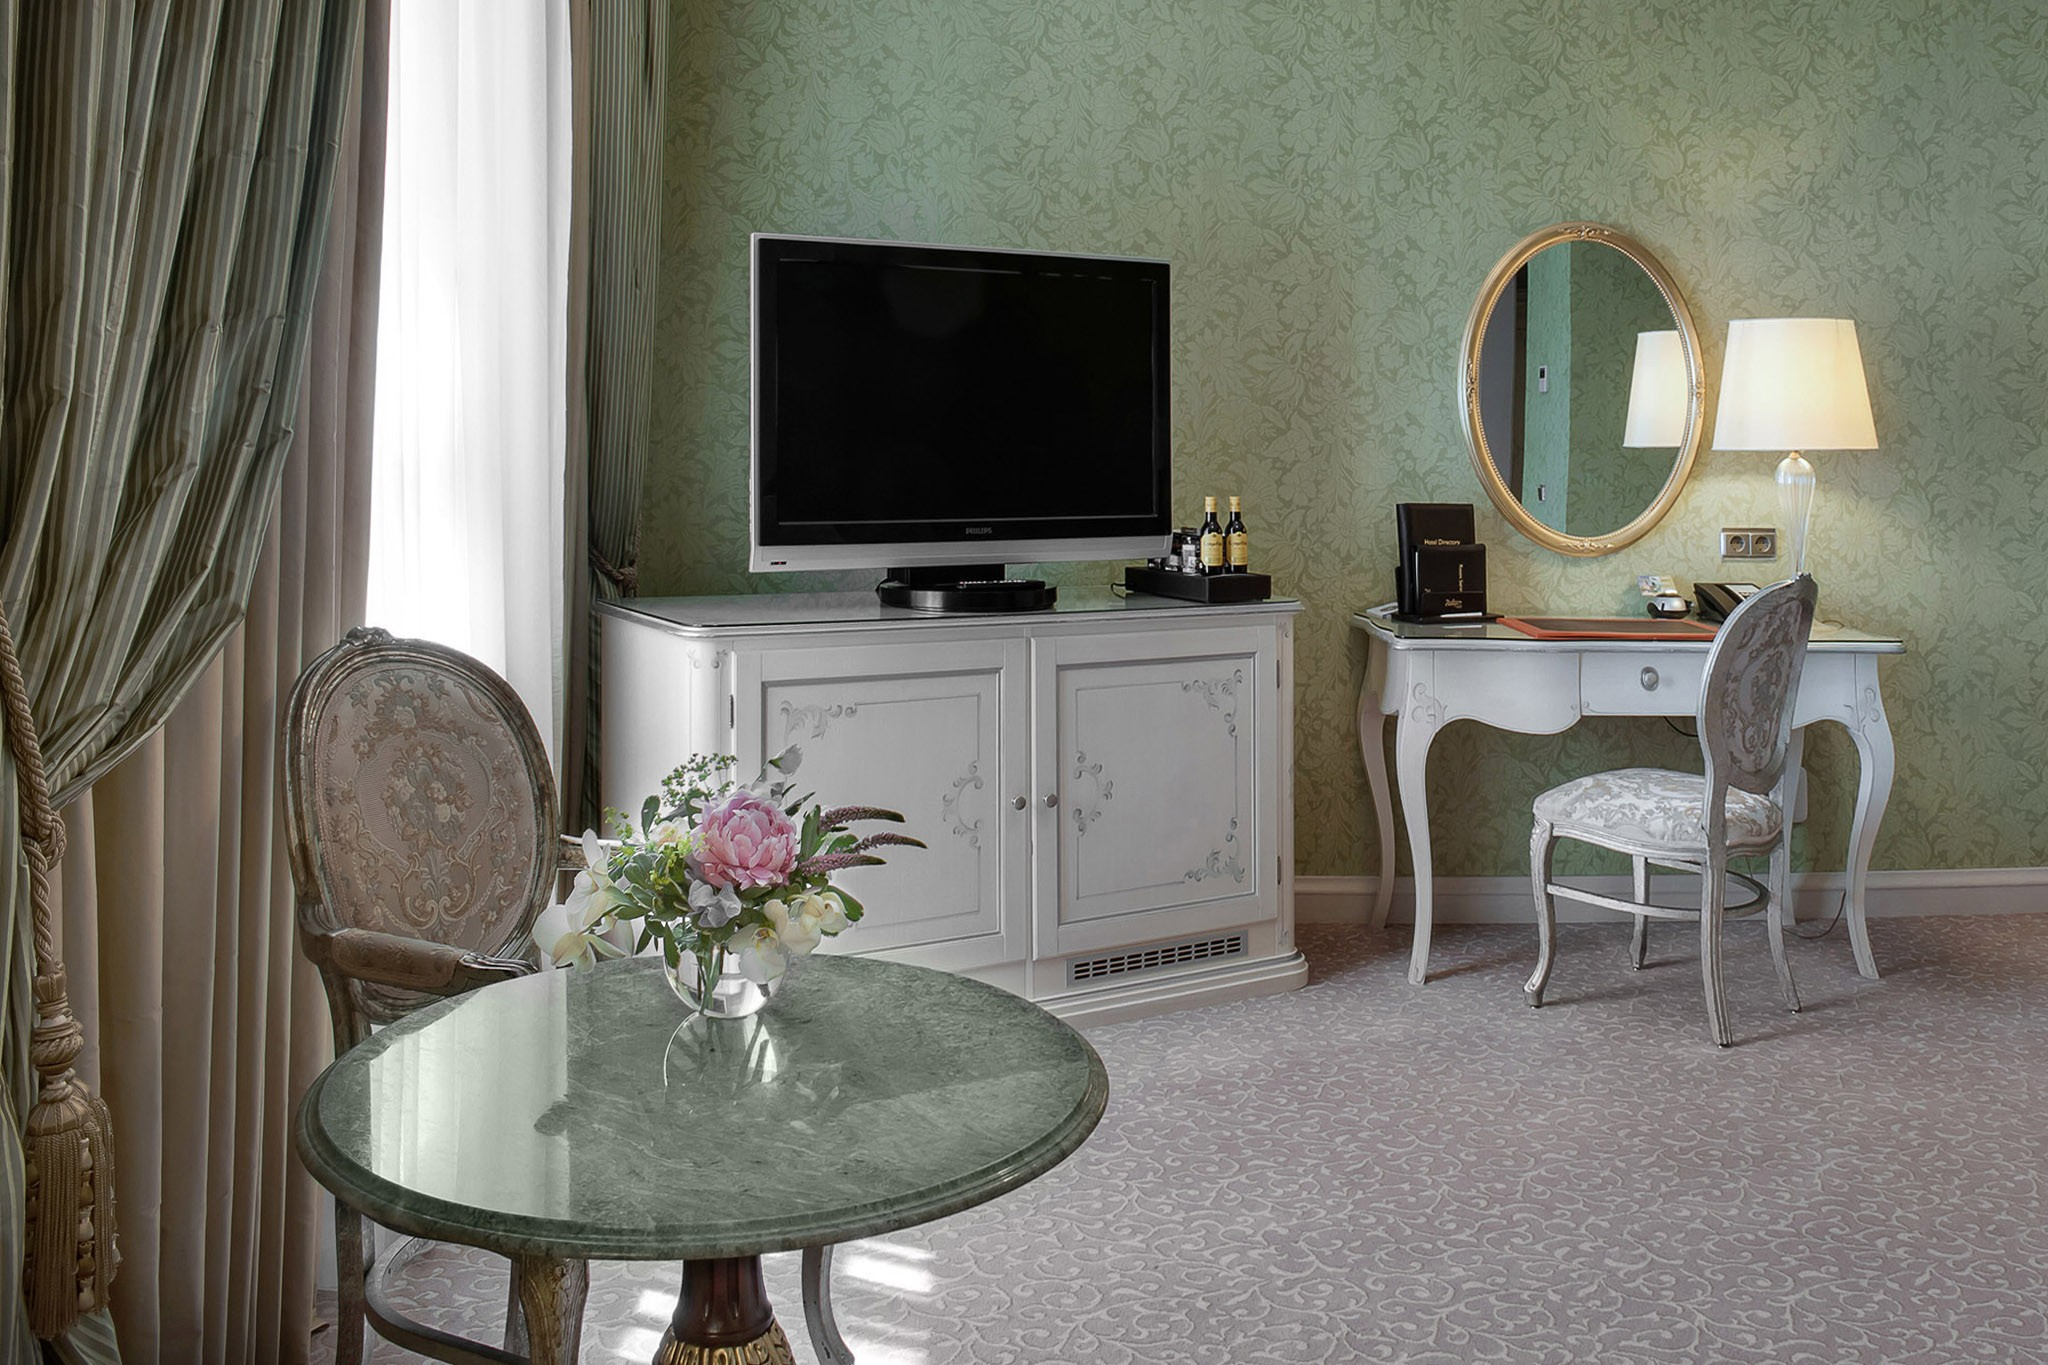 Photos of hotel rooms. Photographer's work for the presentation of apartments